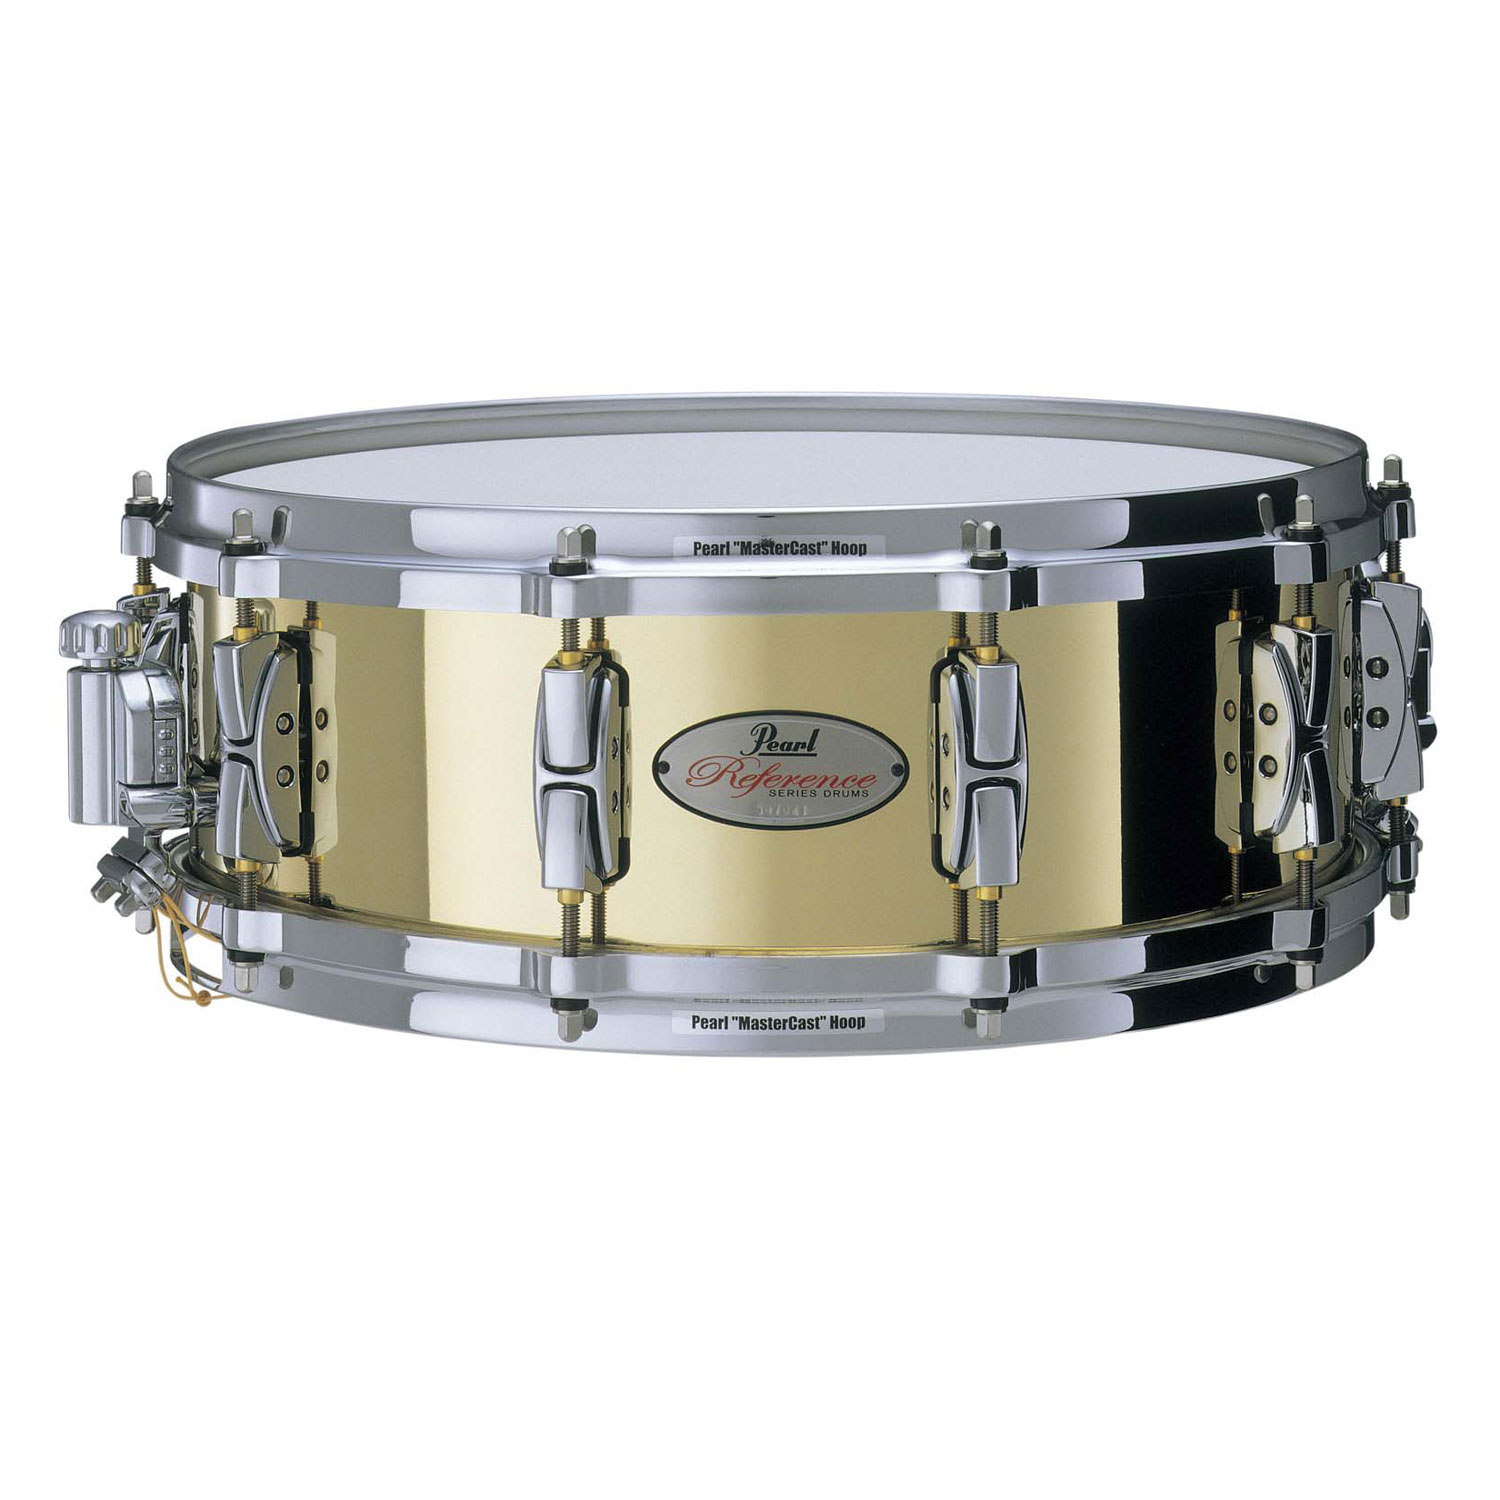 "Pearl 14"" x 5"" 3mm Brass Snare Drum"